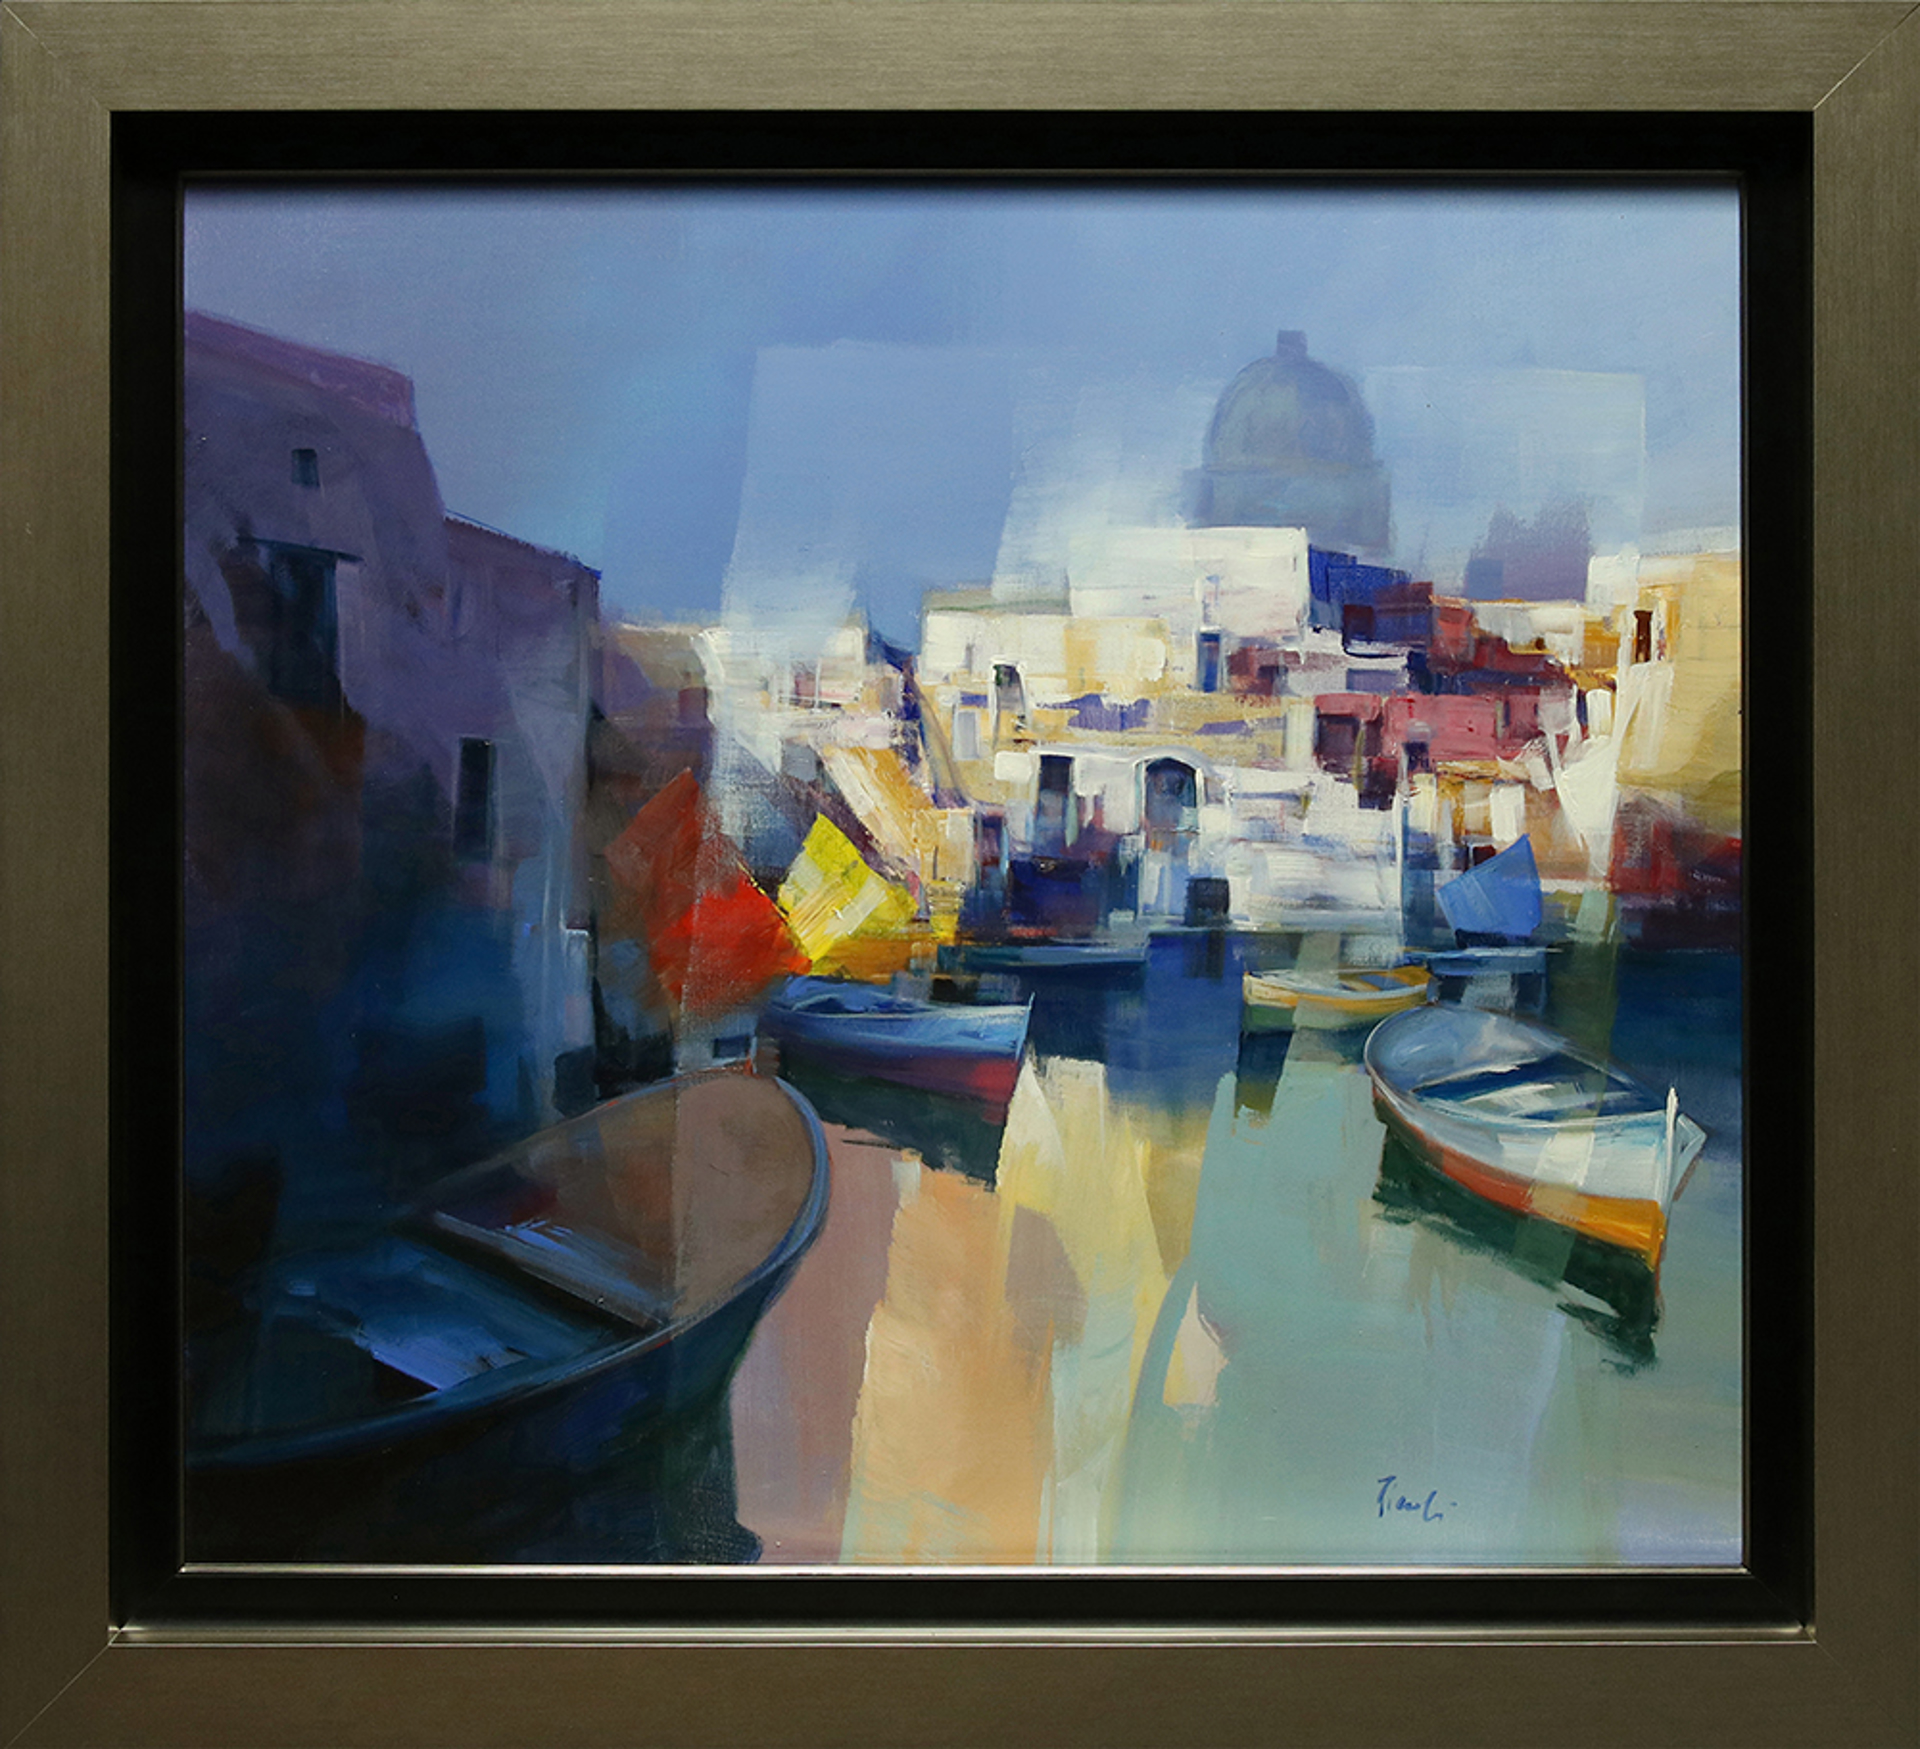 From the Port by Pietro Piccoli